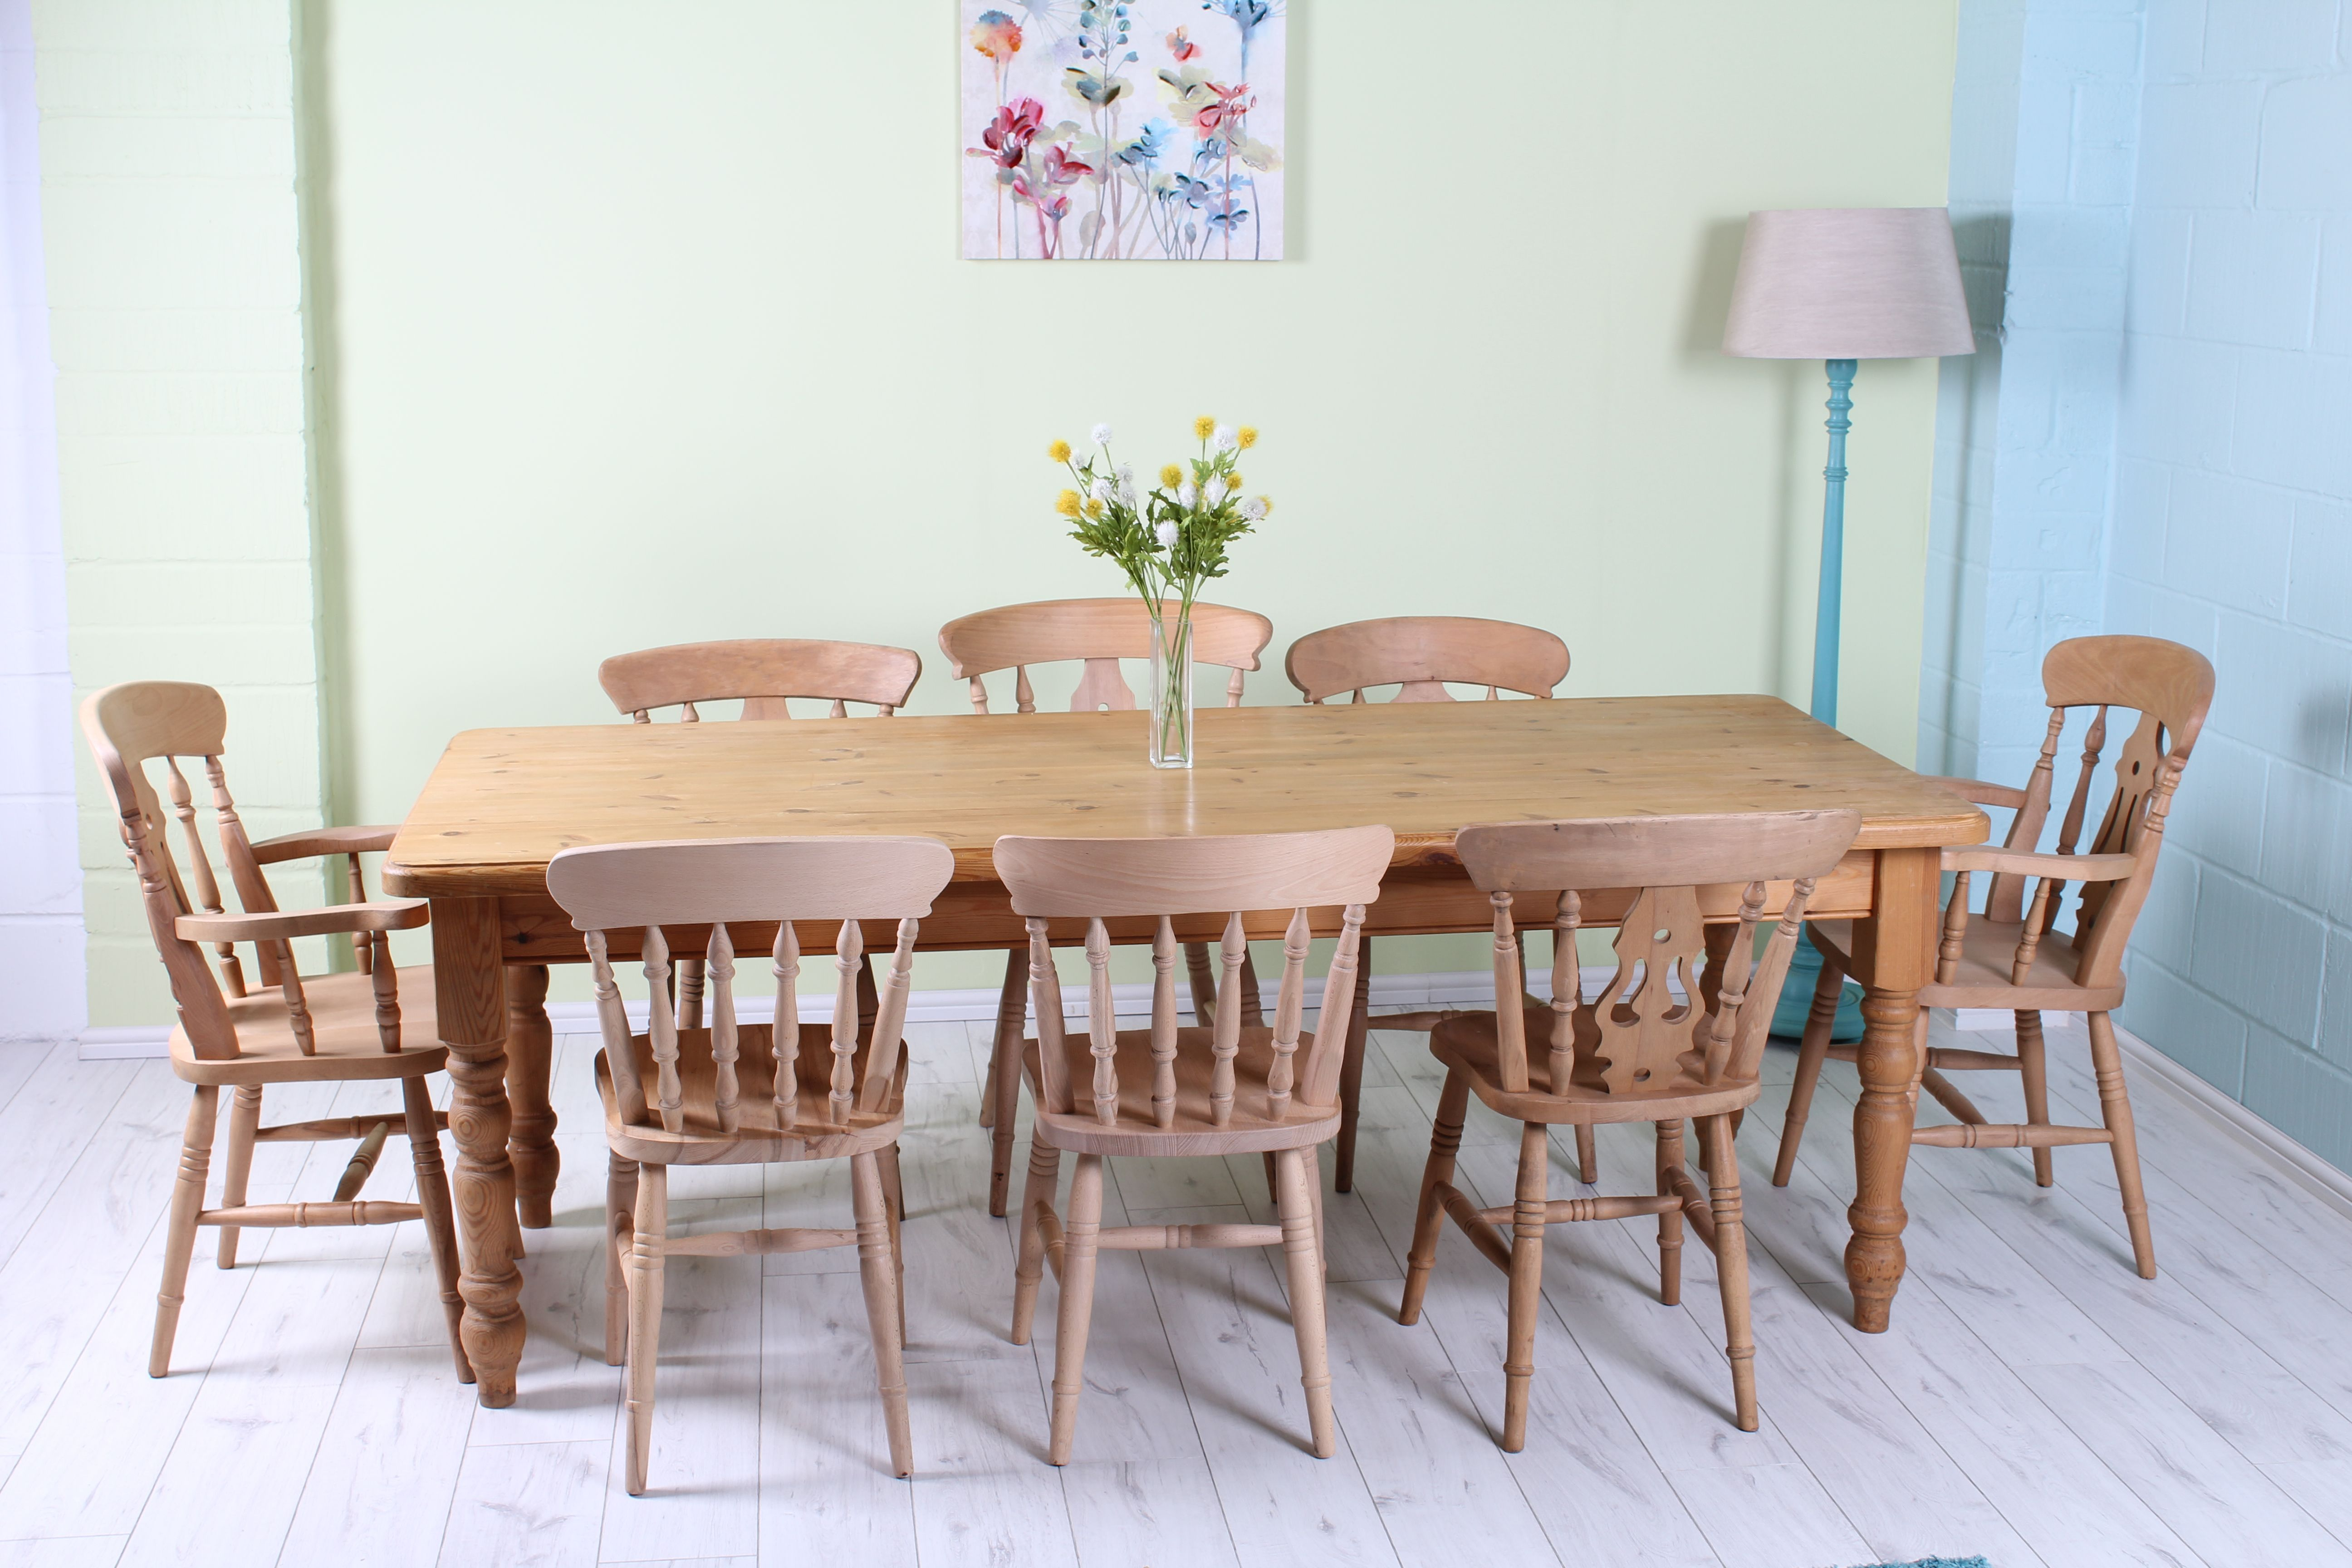 £475 7 FT SOLID PINE FARMHOUSE TABLE WITH 8 CHAIRS INCLUDING 2 CARVERS   L